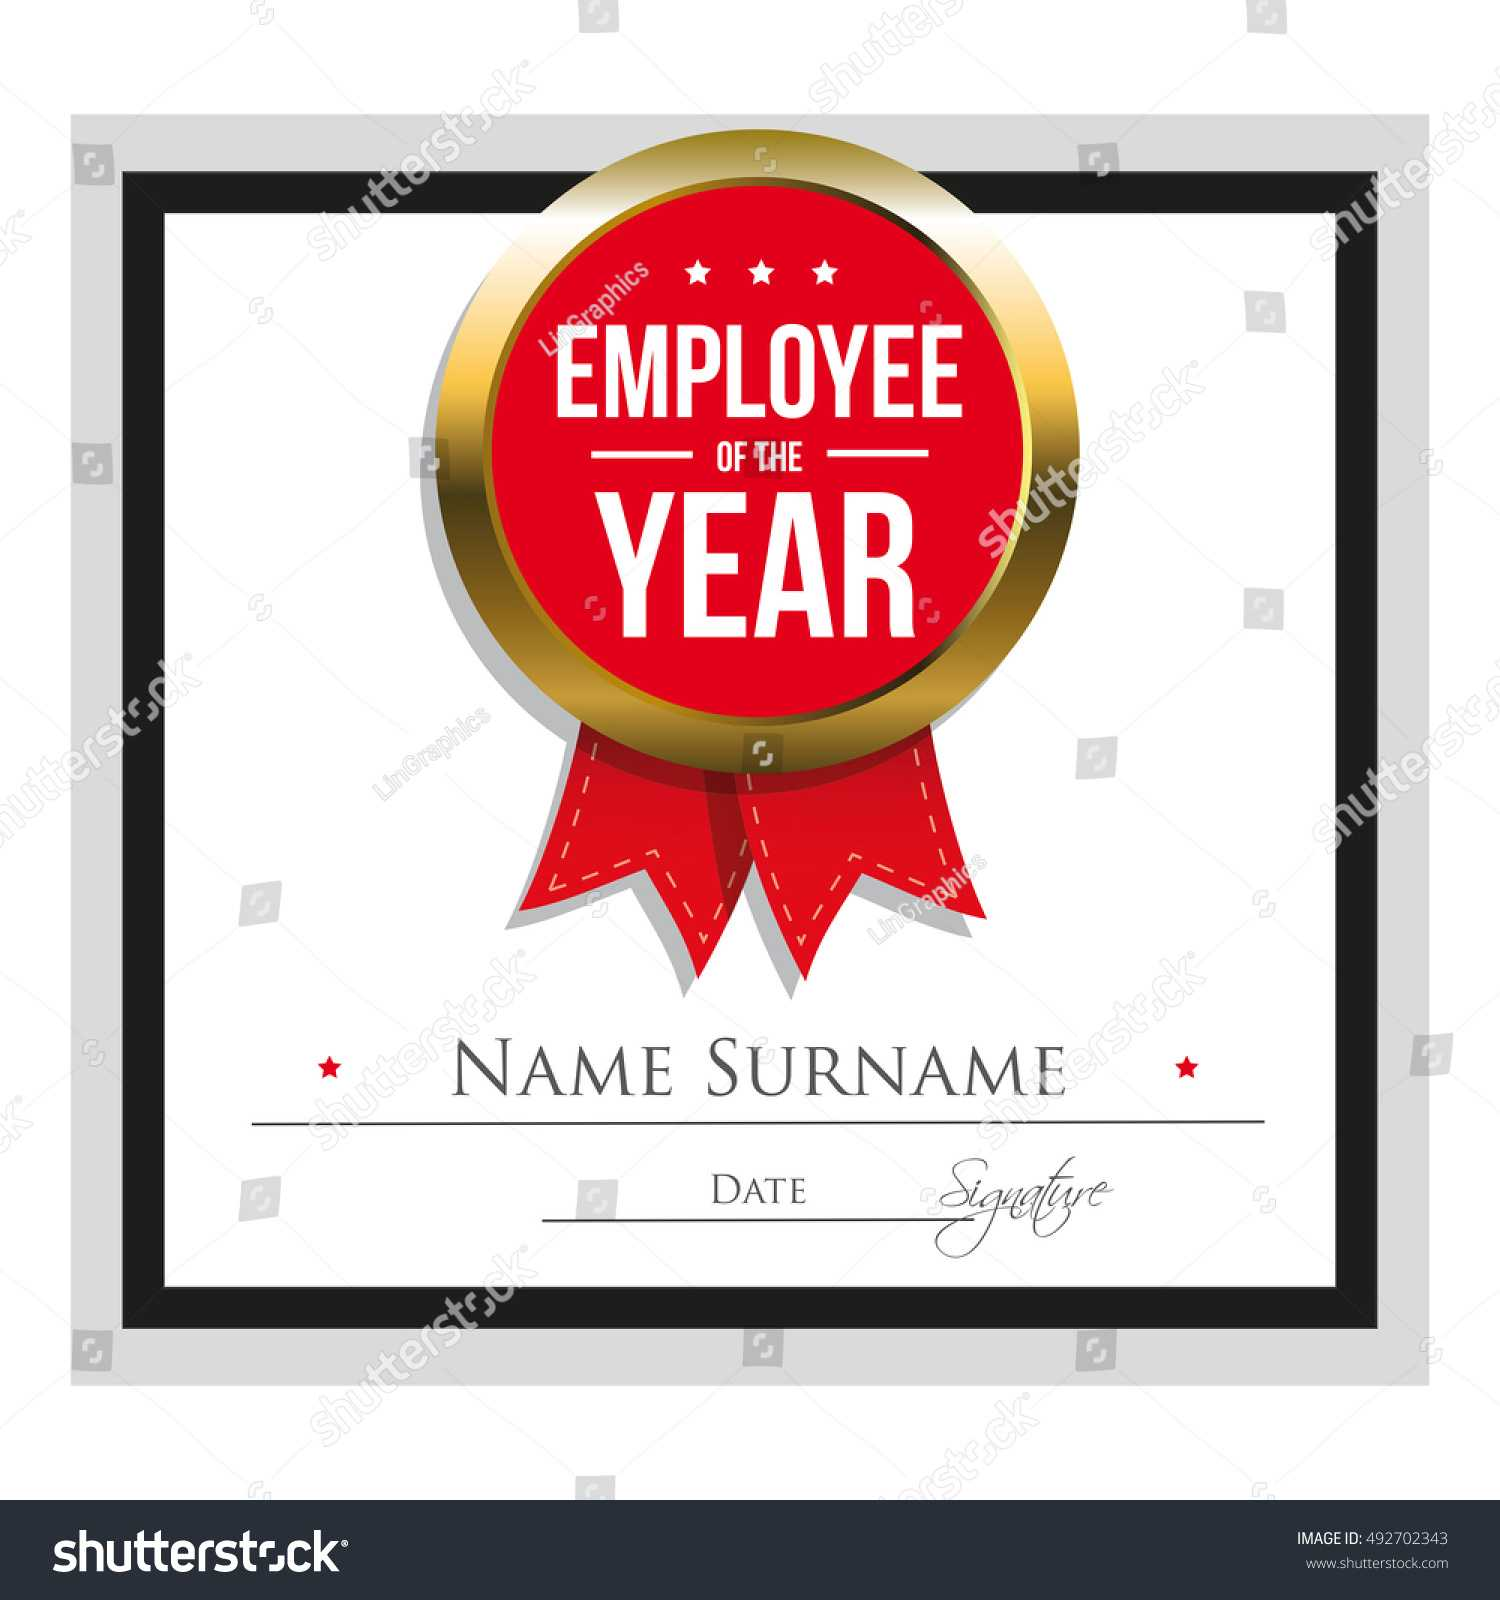 Employee Year Certificate Template Stock Vector (Royalty For Employee Of The Year Certificate Template Free